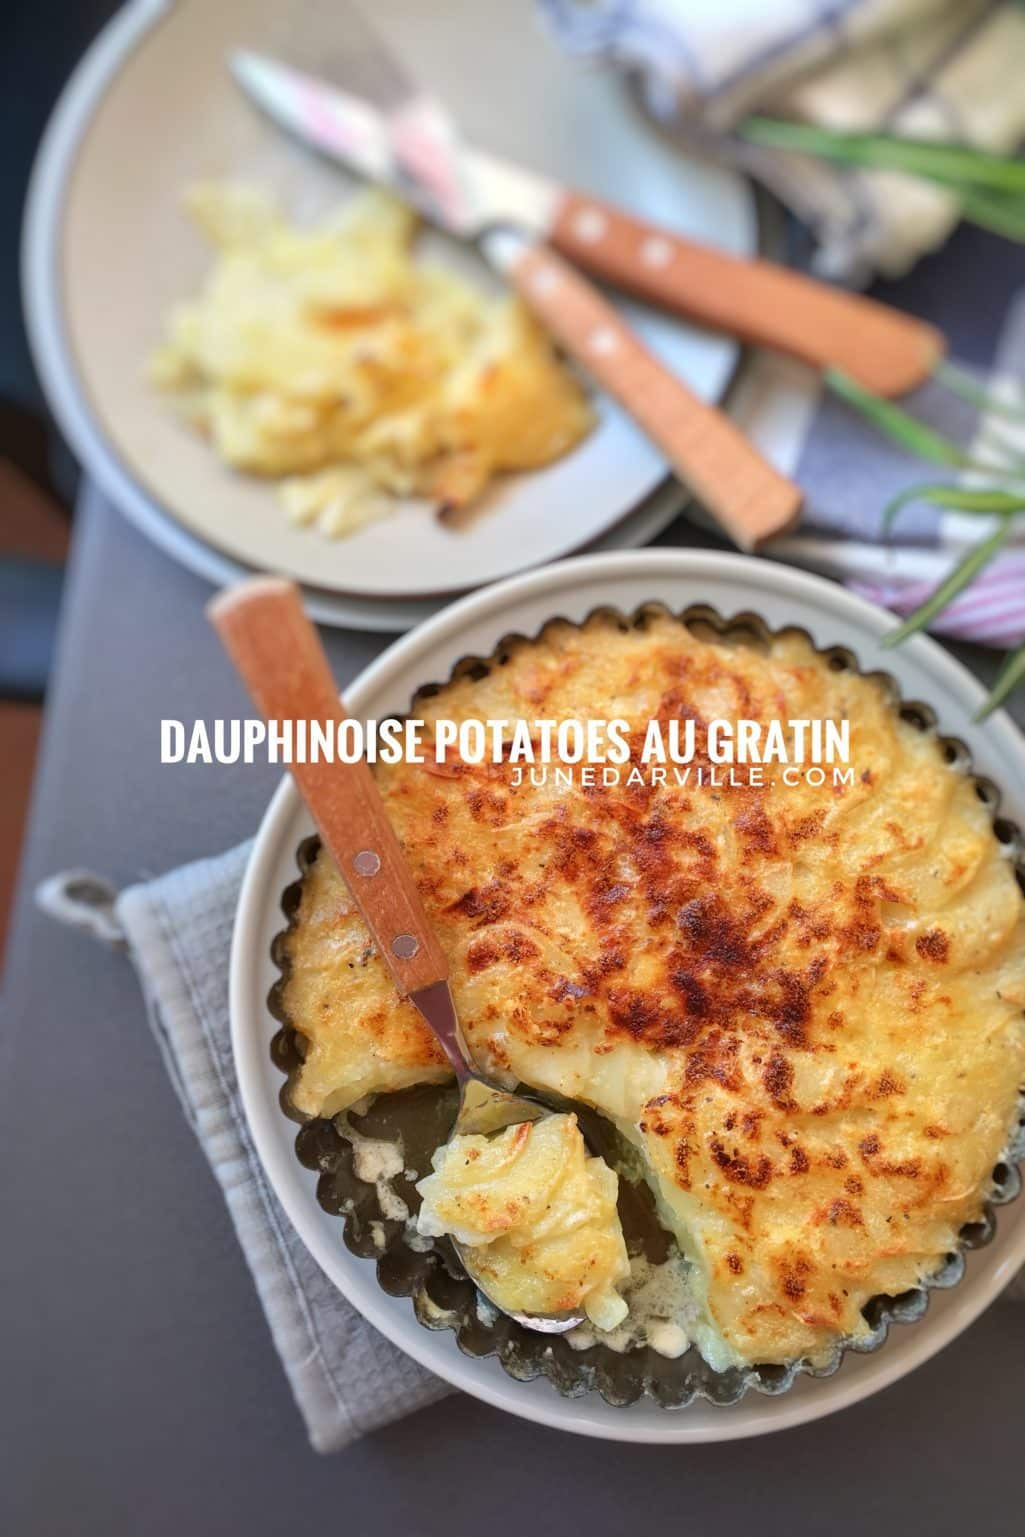 Creamy dauphinoise potatoes: a French scalloped potato bake with garlic, nutmeg and cream! The perfect potato side dish for cold winter days...